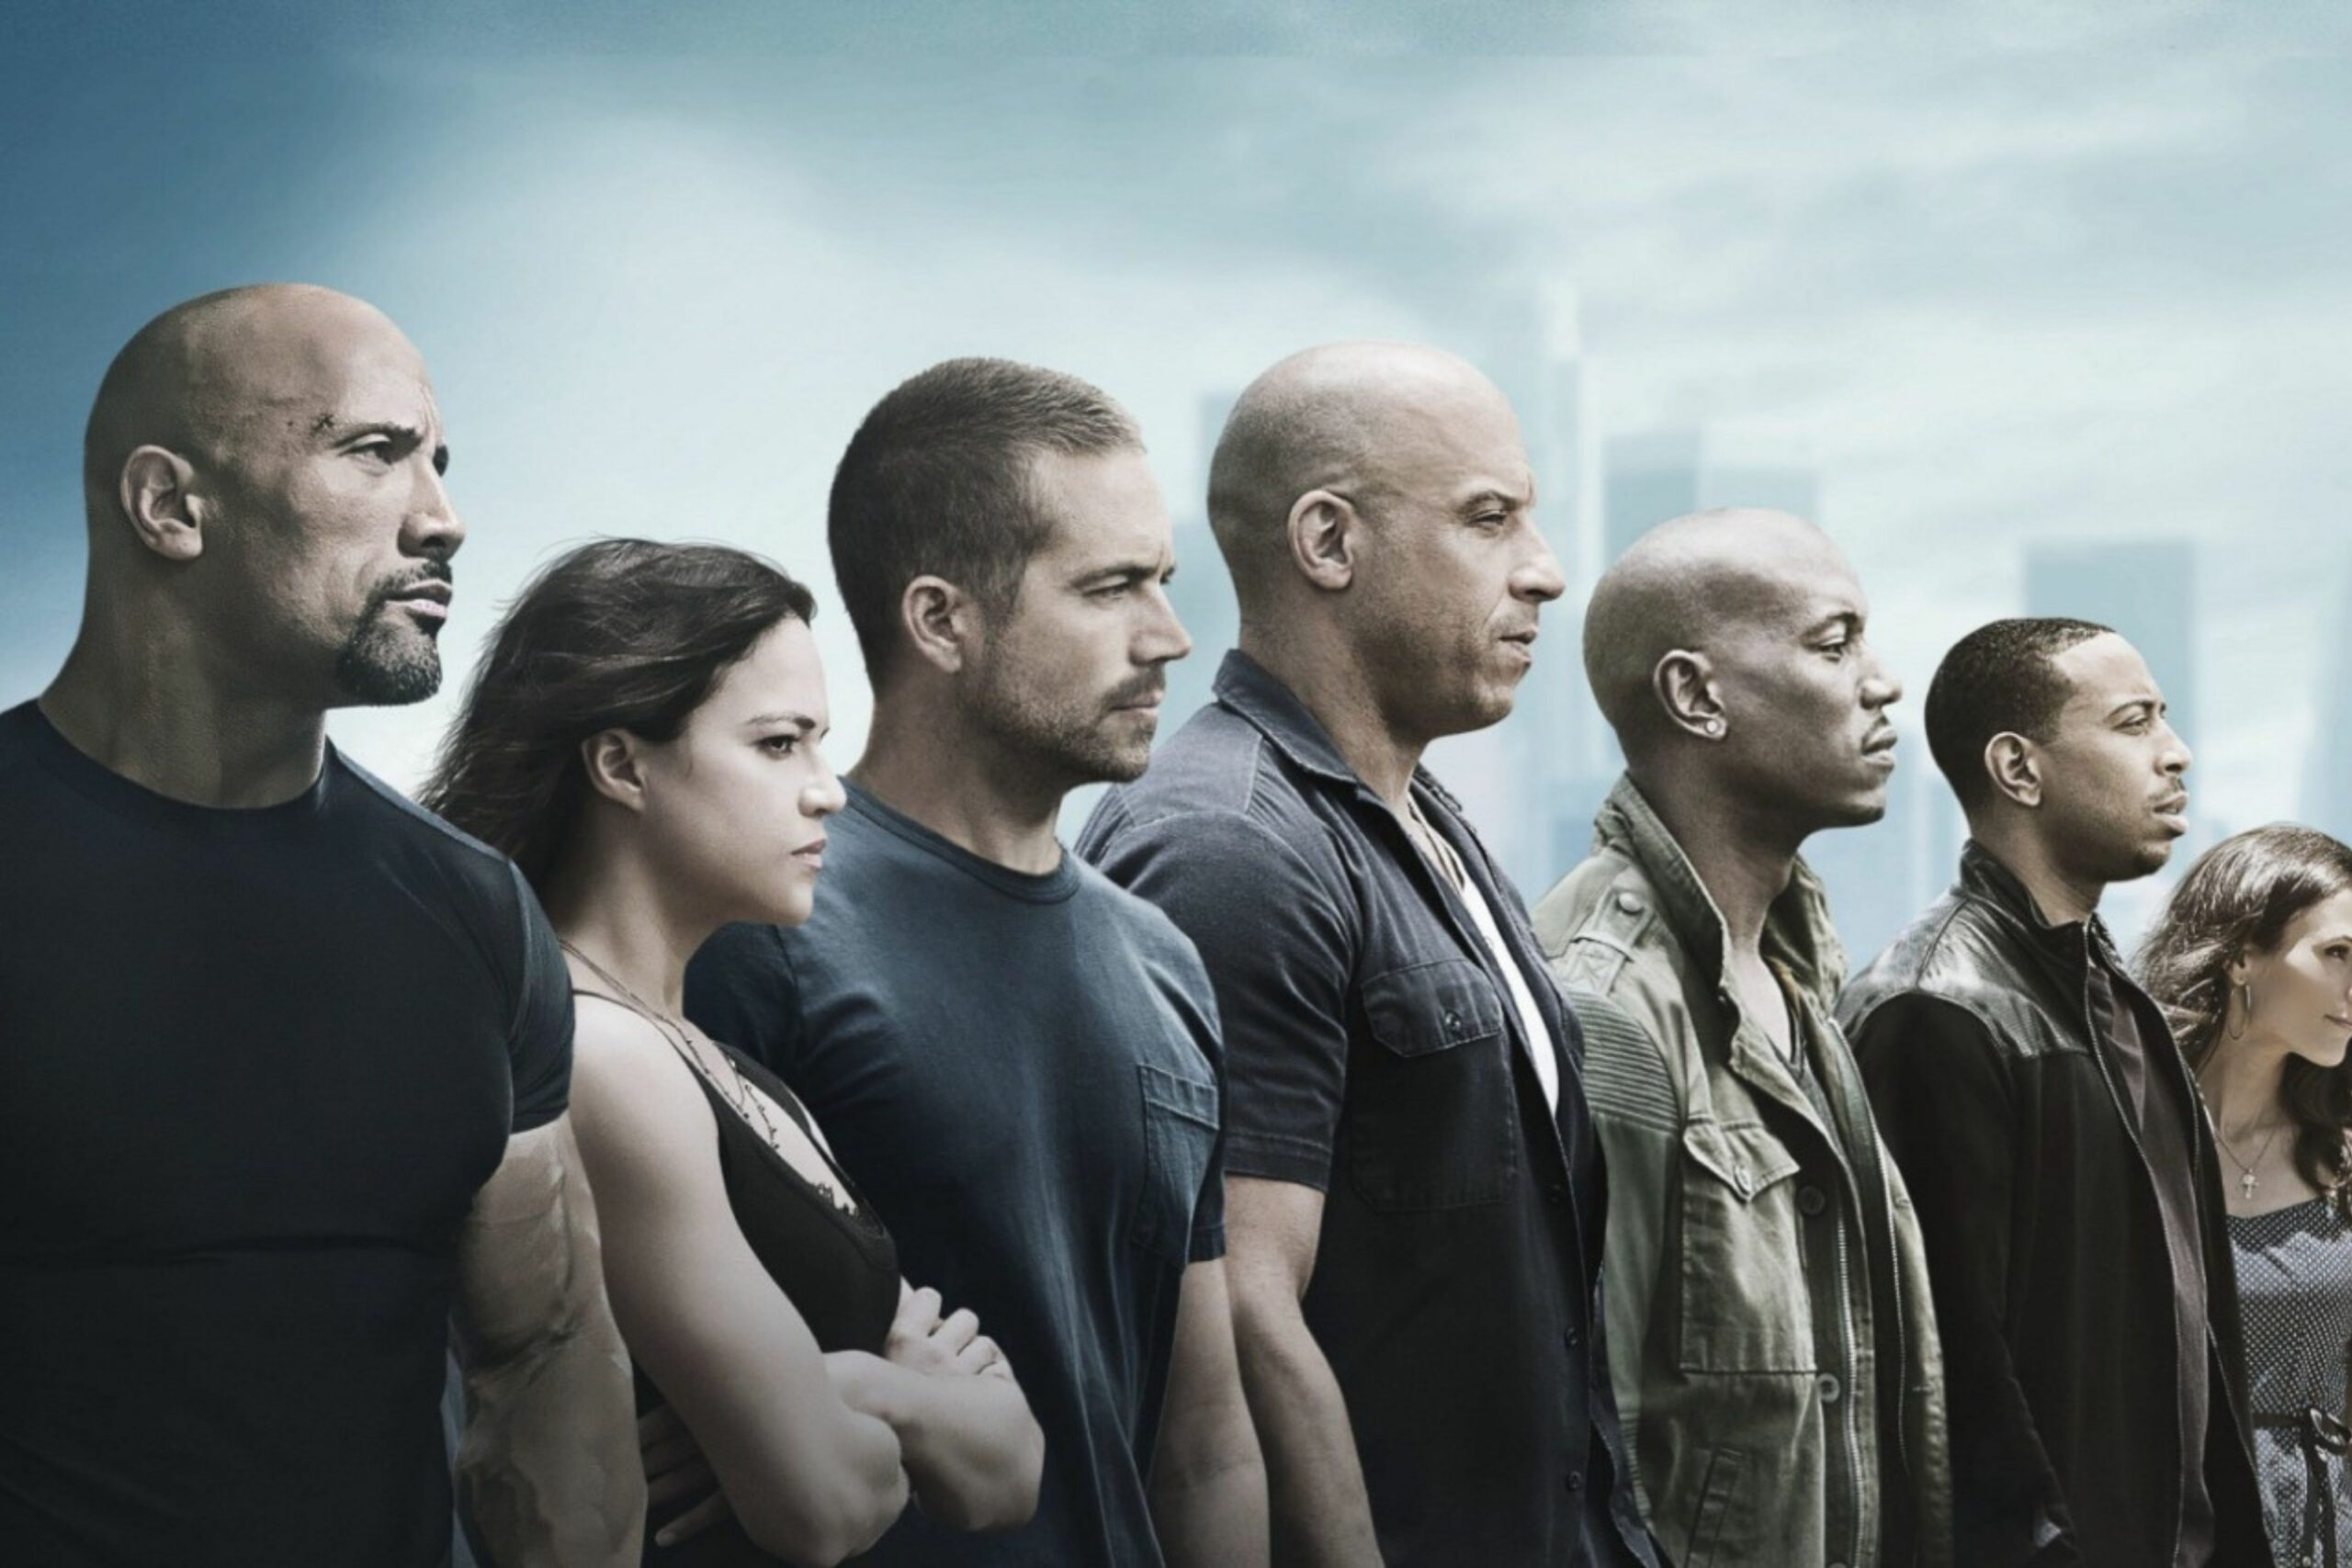 BAD NEWS, FAST AND FURIOUS 9 POSTPONED AGAIN